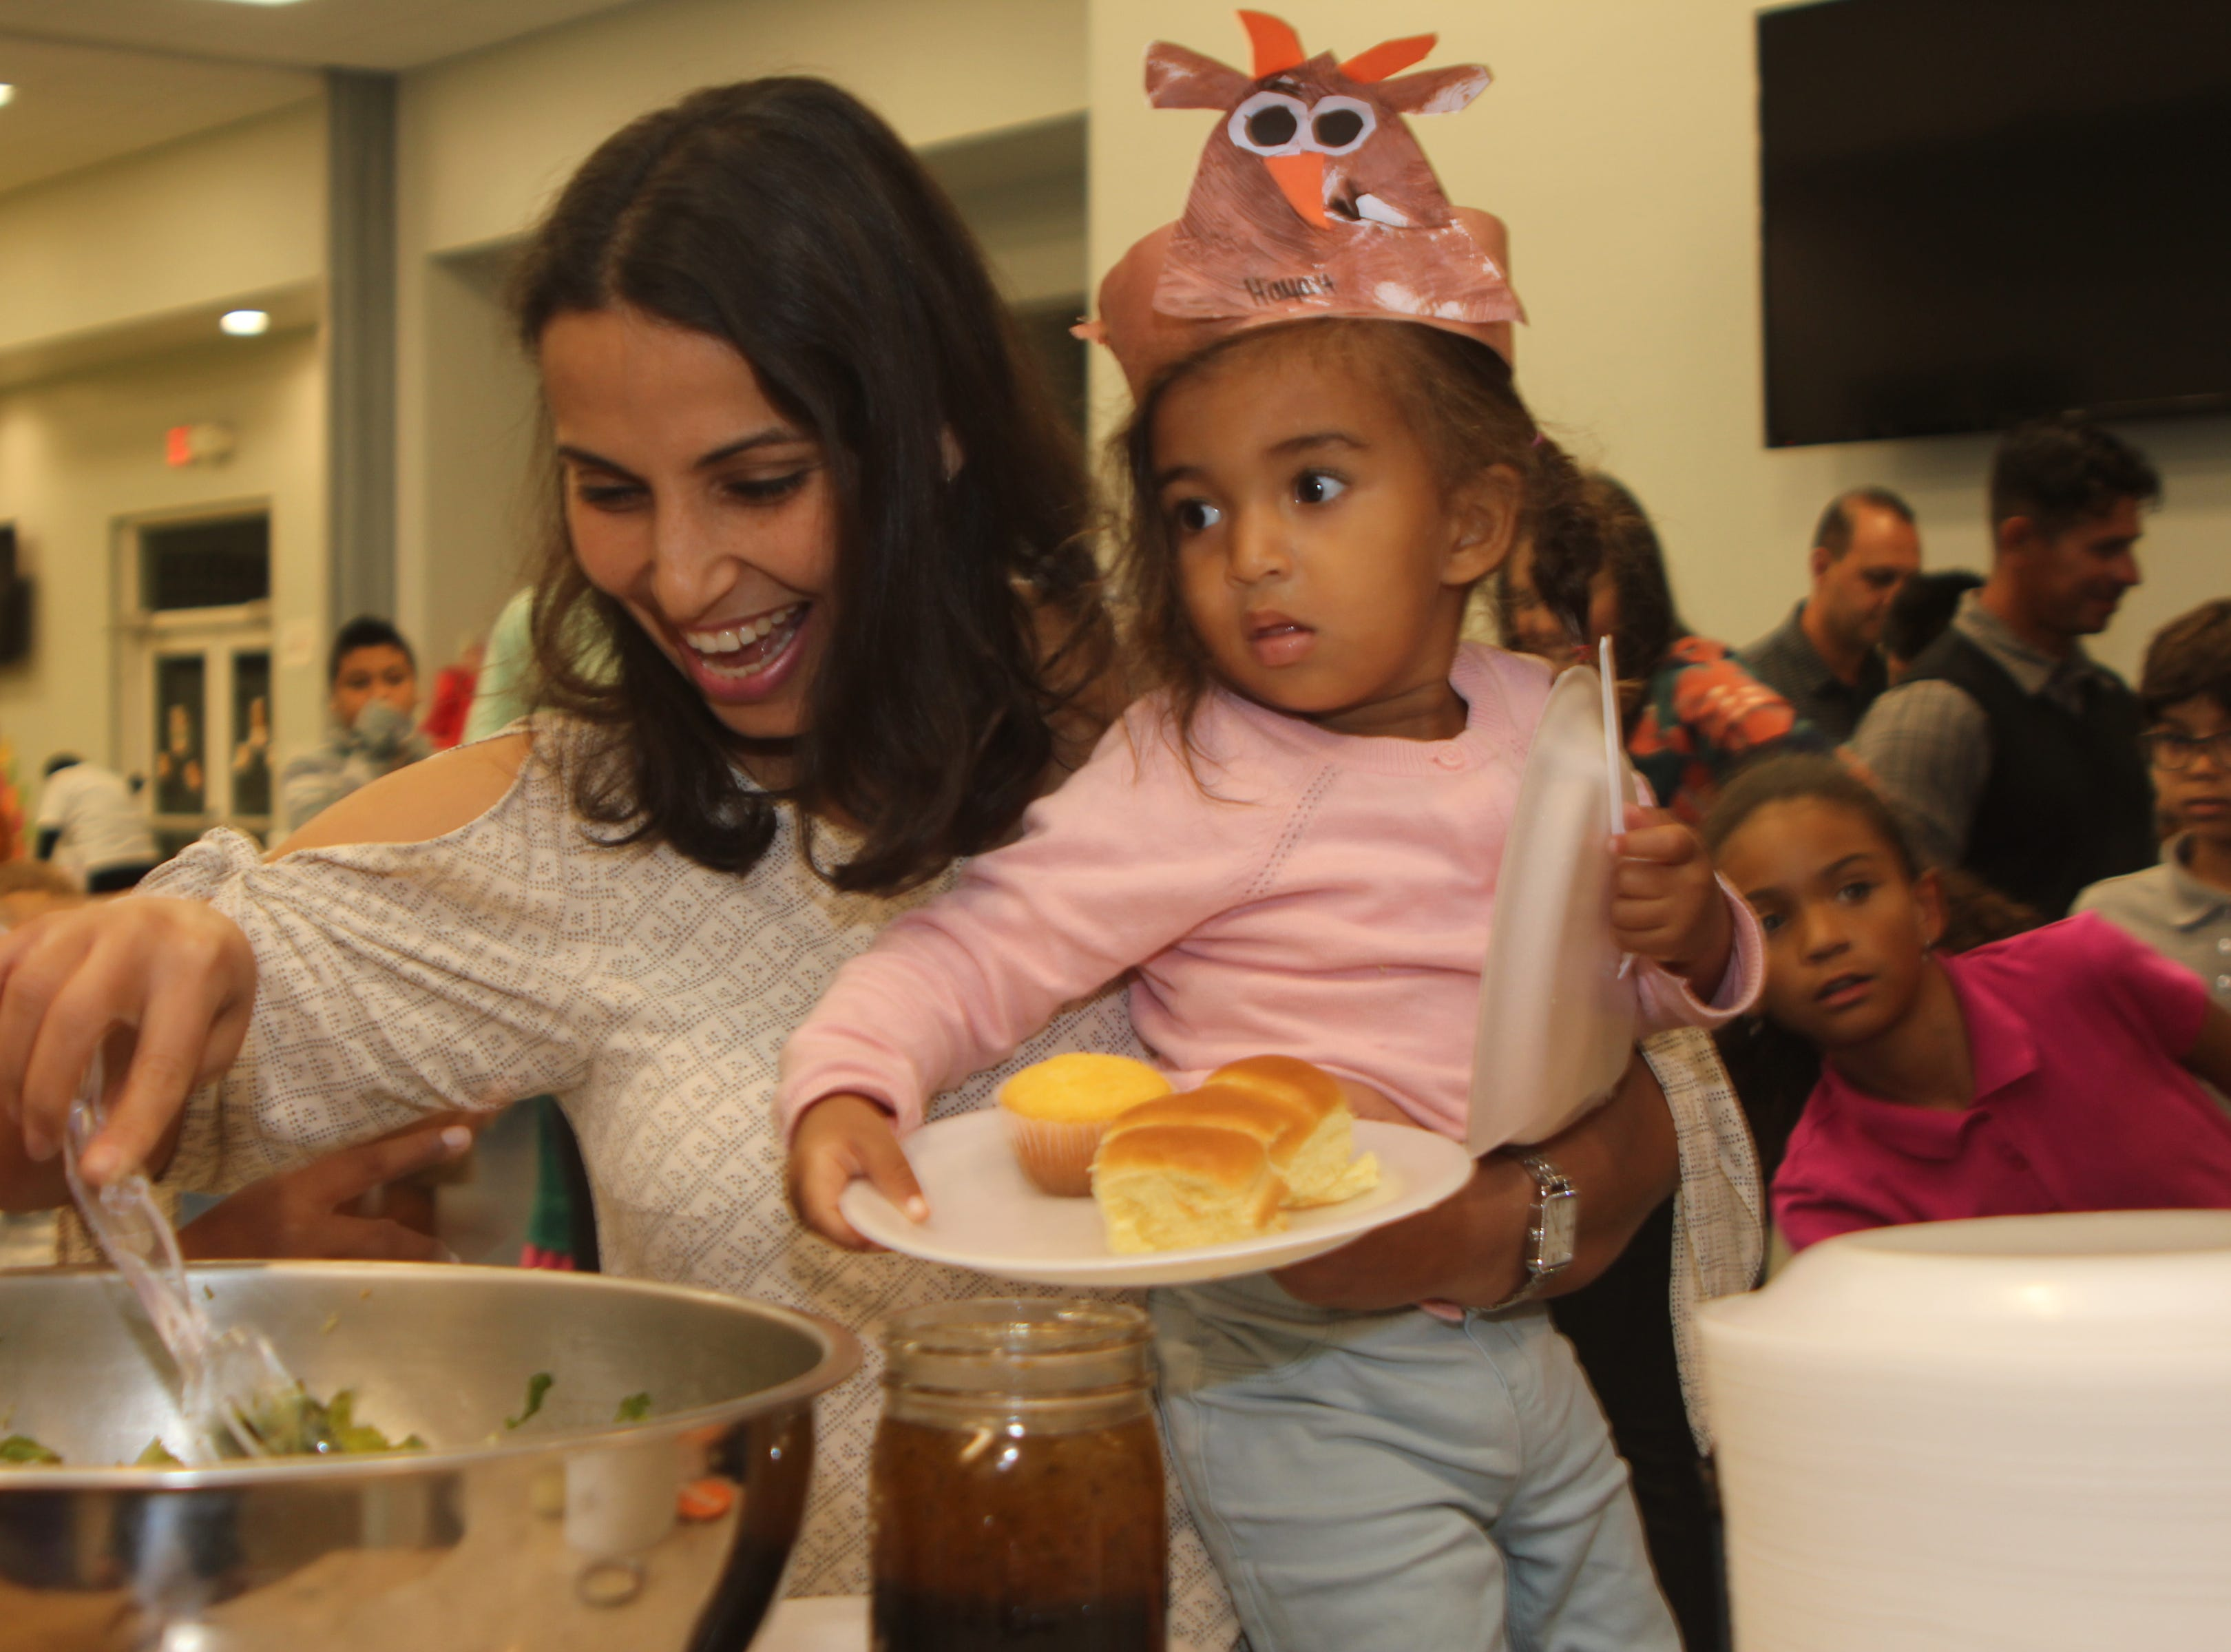 Dinner with a difference: Marco Y students treat parents to super soup and salads